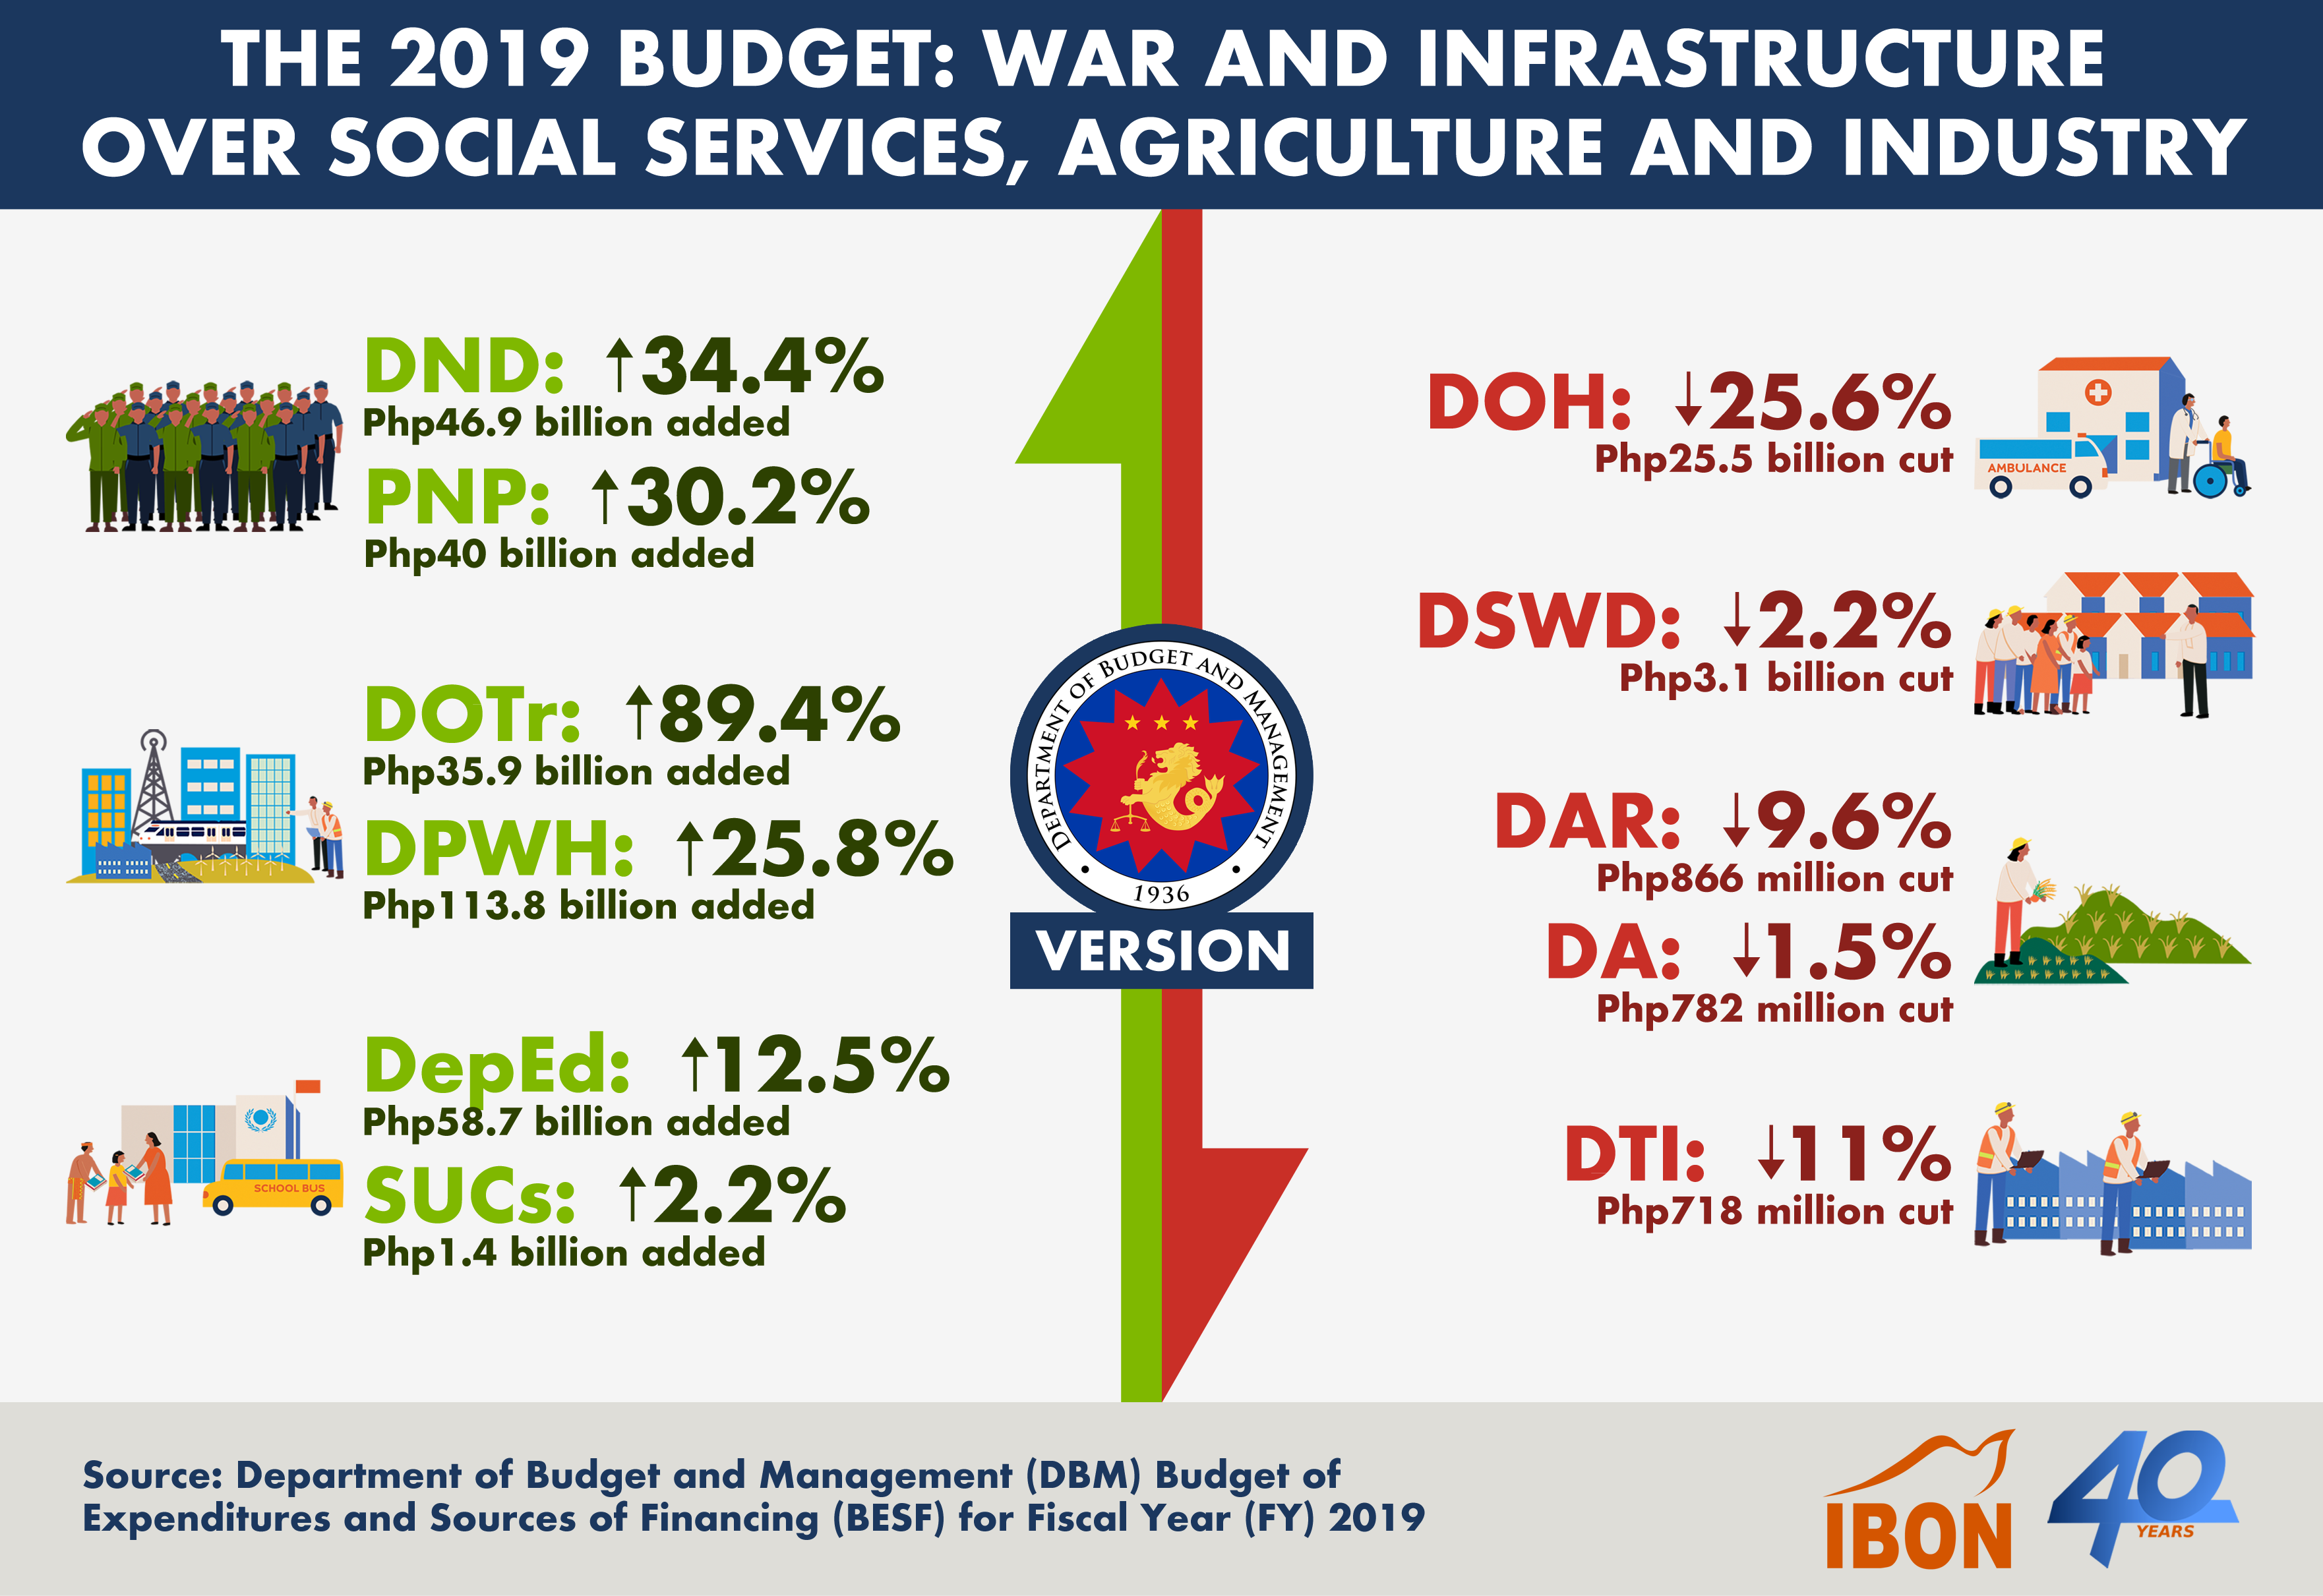 20192601 The 2019 Budget - BESF Version